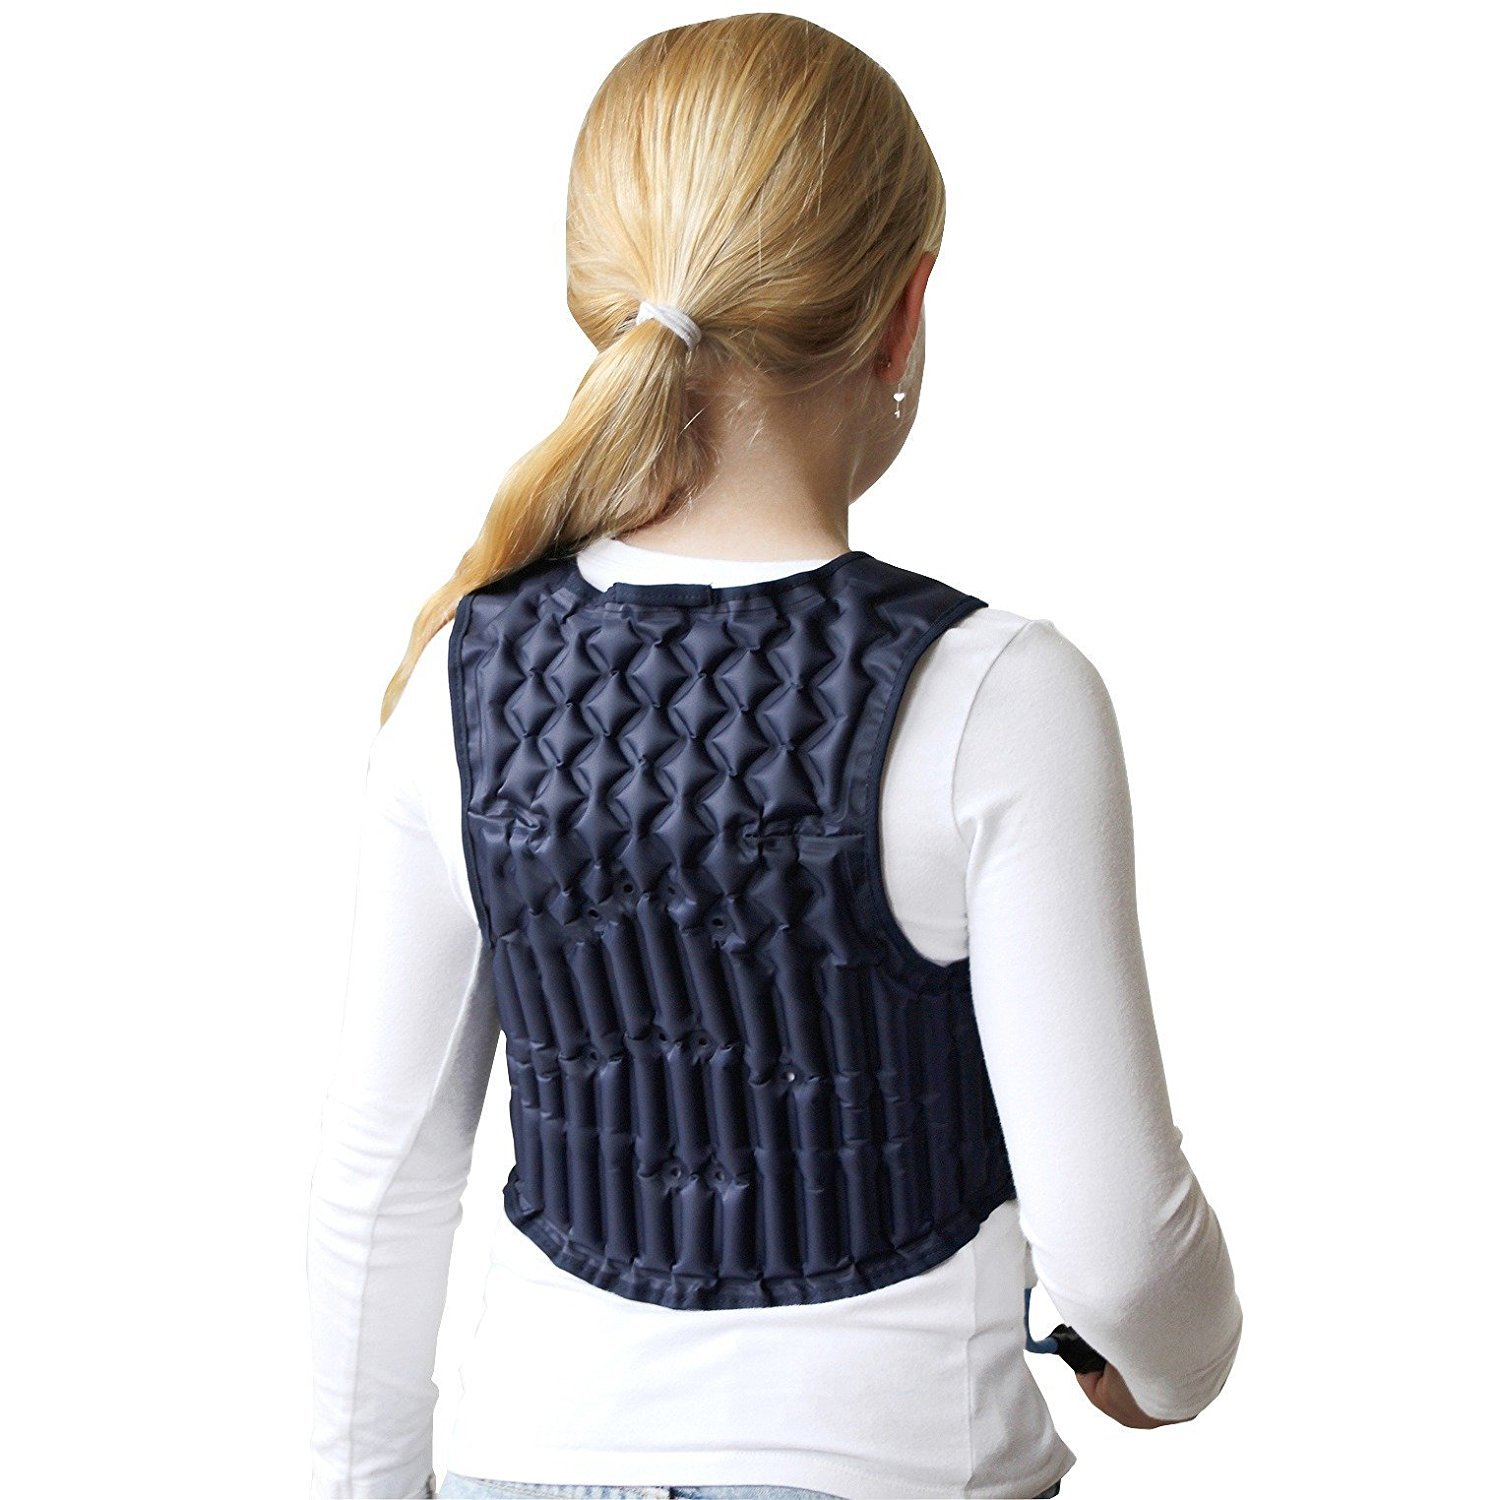 Squease a Non weighted deep pressure vest for Autism ADHD